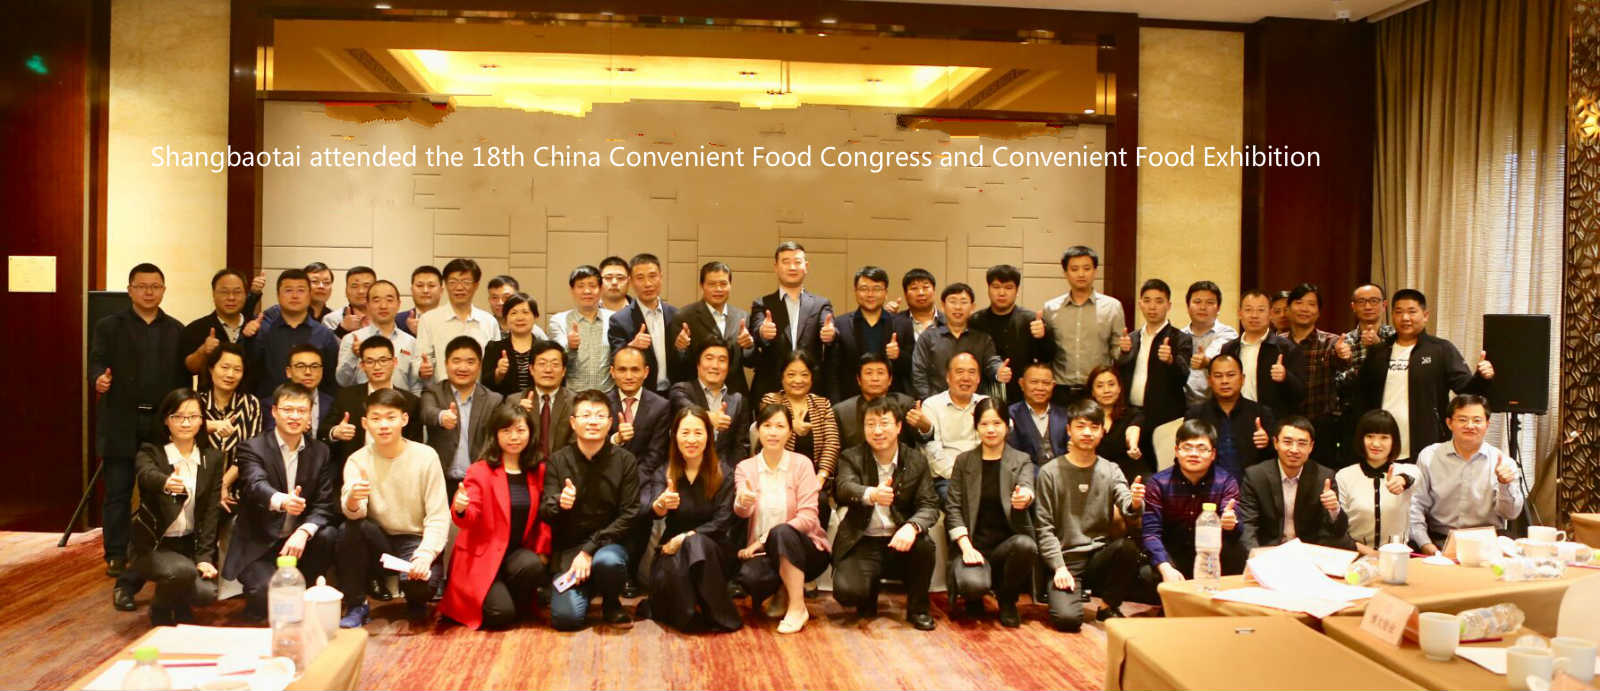 Shangbaotai attended the 18th China Convenient Food Congress and Convenient Food Exhibition